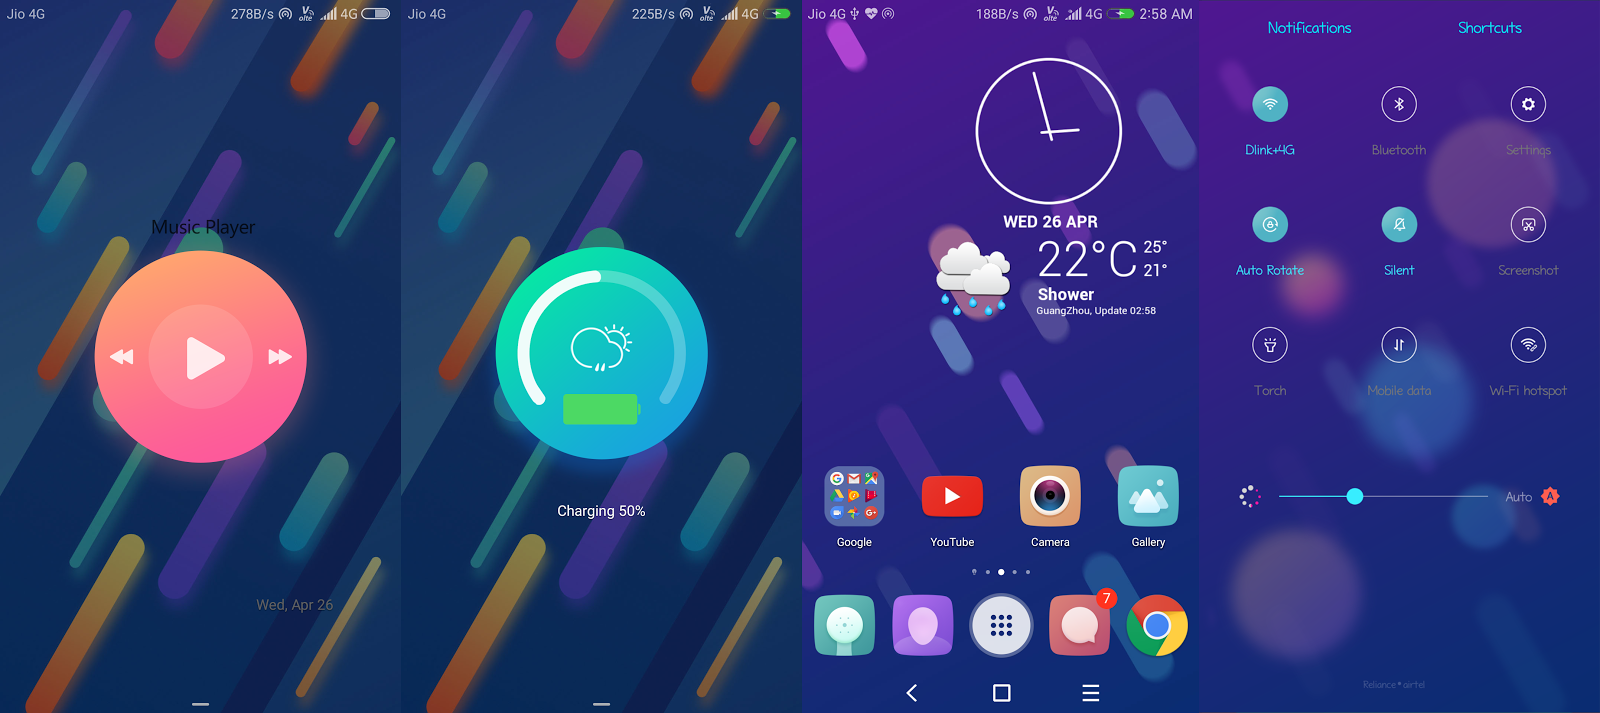 Download Ios 11 Iphone X Theme For Any Xiaomi Mi Devices – Dibujos